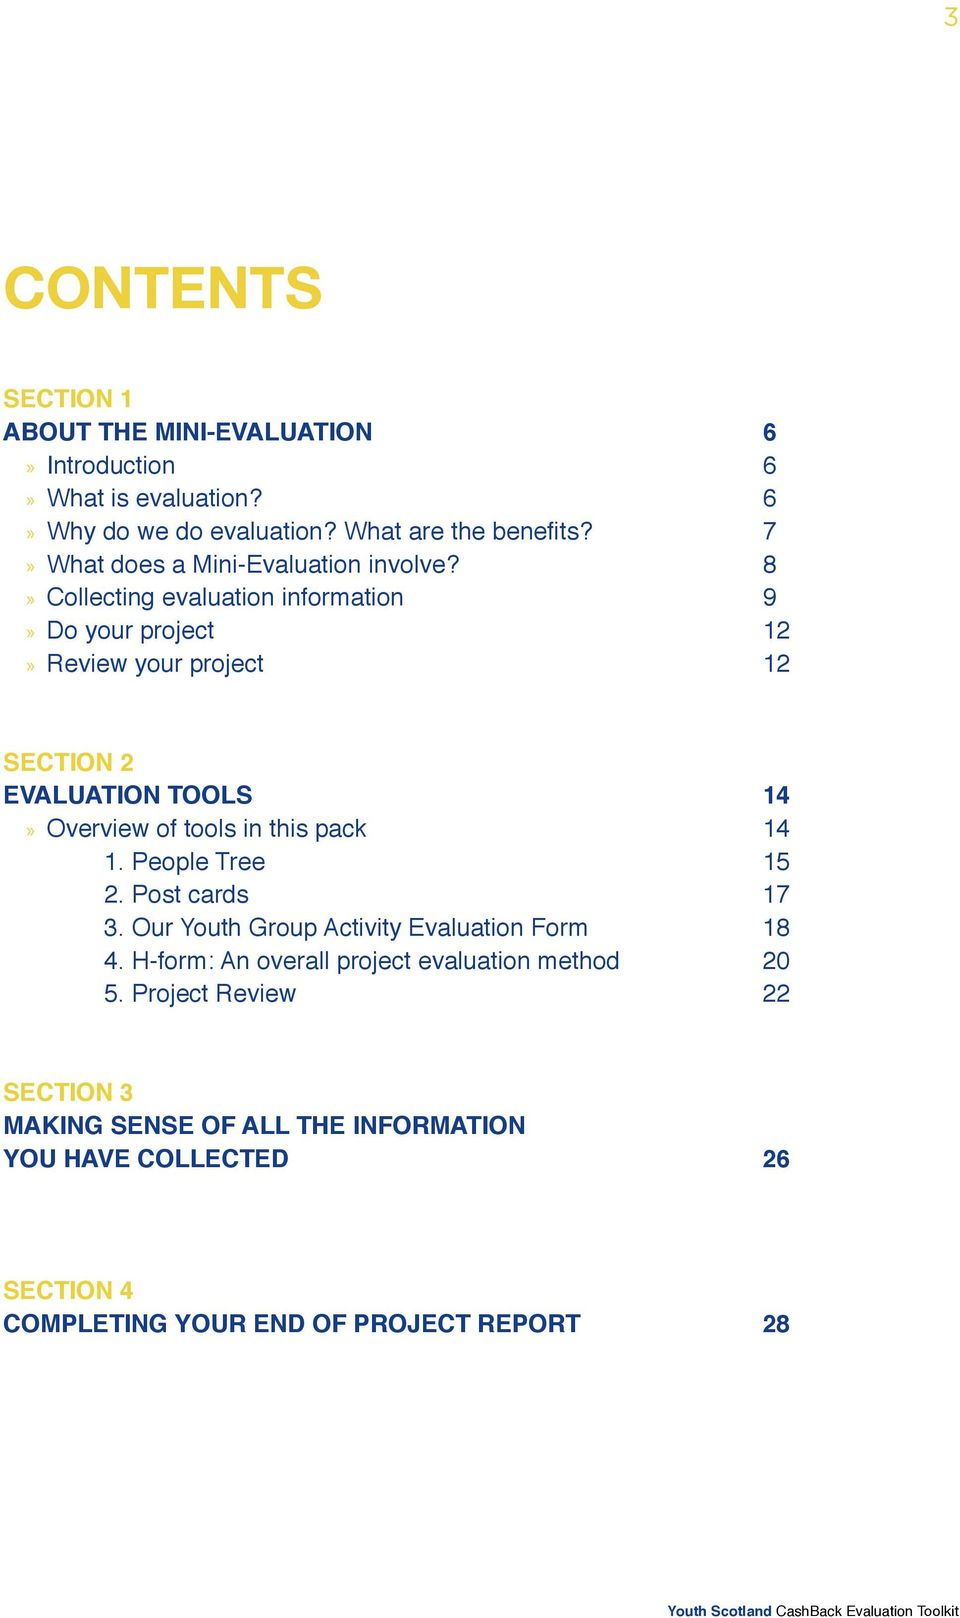 8»» Collecting evaluation information 9»» Do your project 12»» Review your project 12 Section 2 Evaluation Tools 14»» Overview of tools in this pack 14